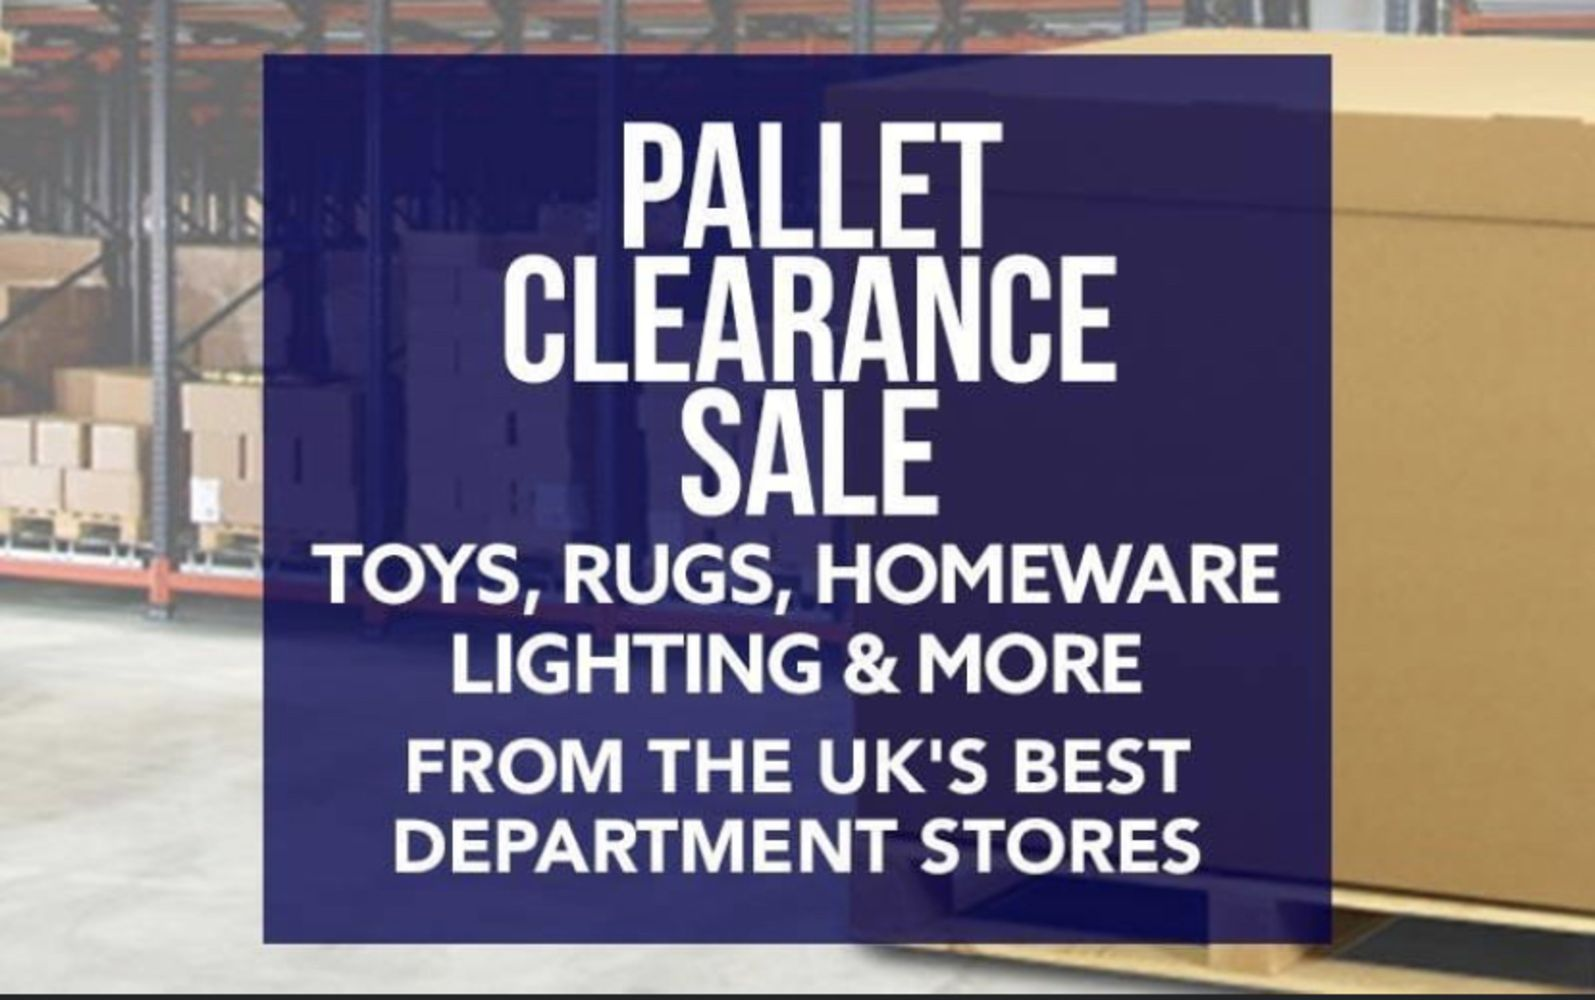 No Reserve - Pallet Clearance Sale! 15th March 2021